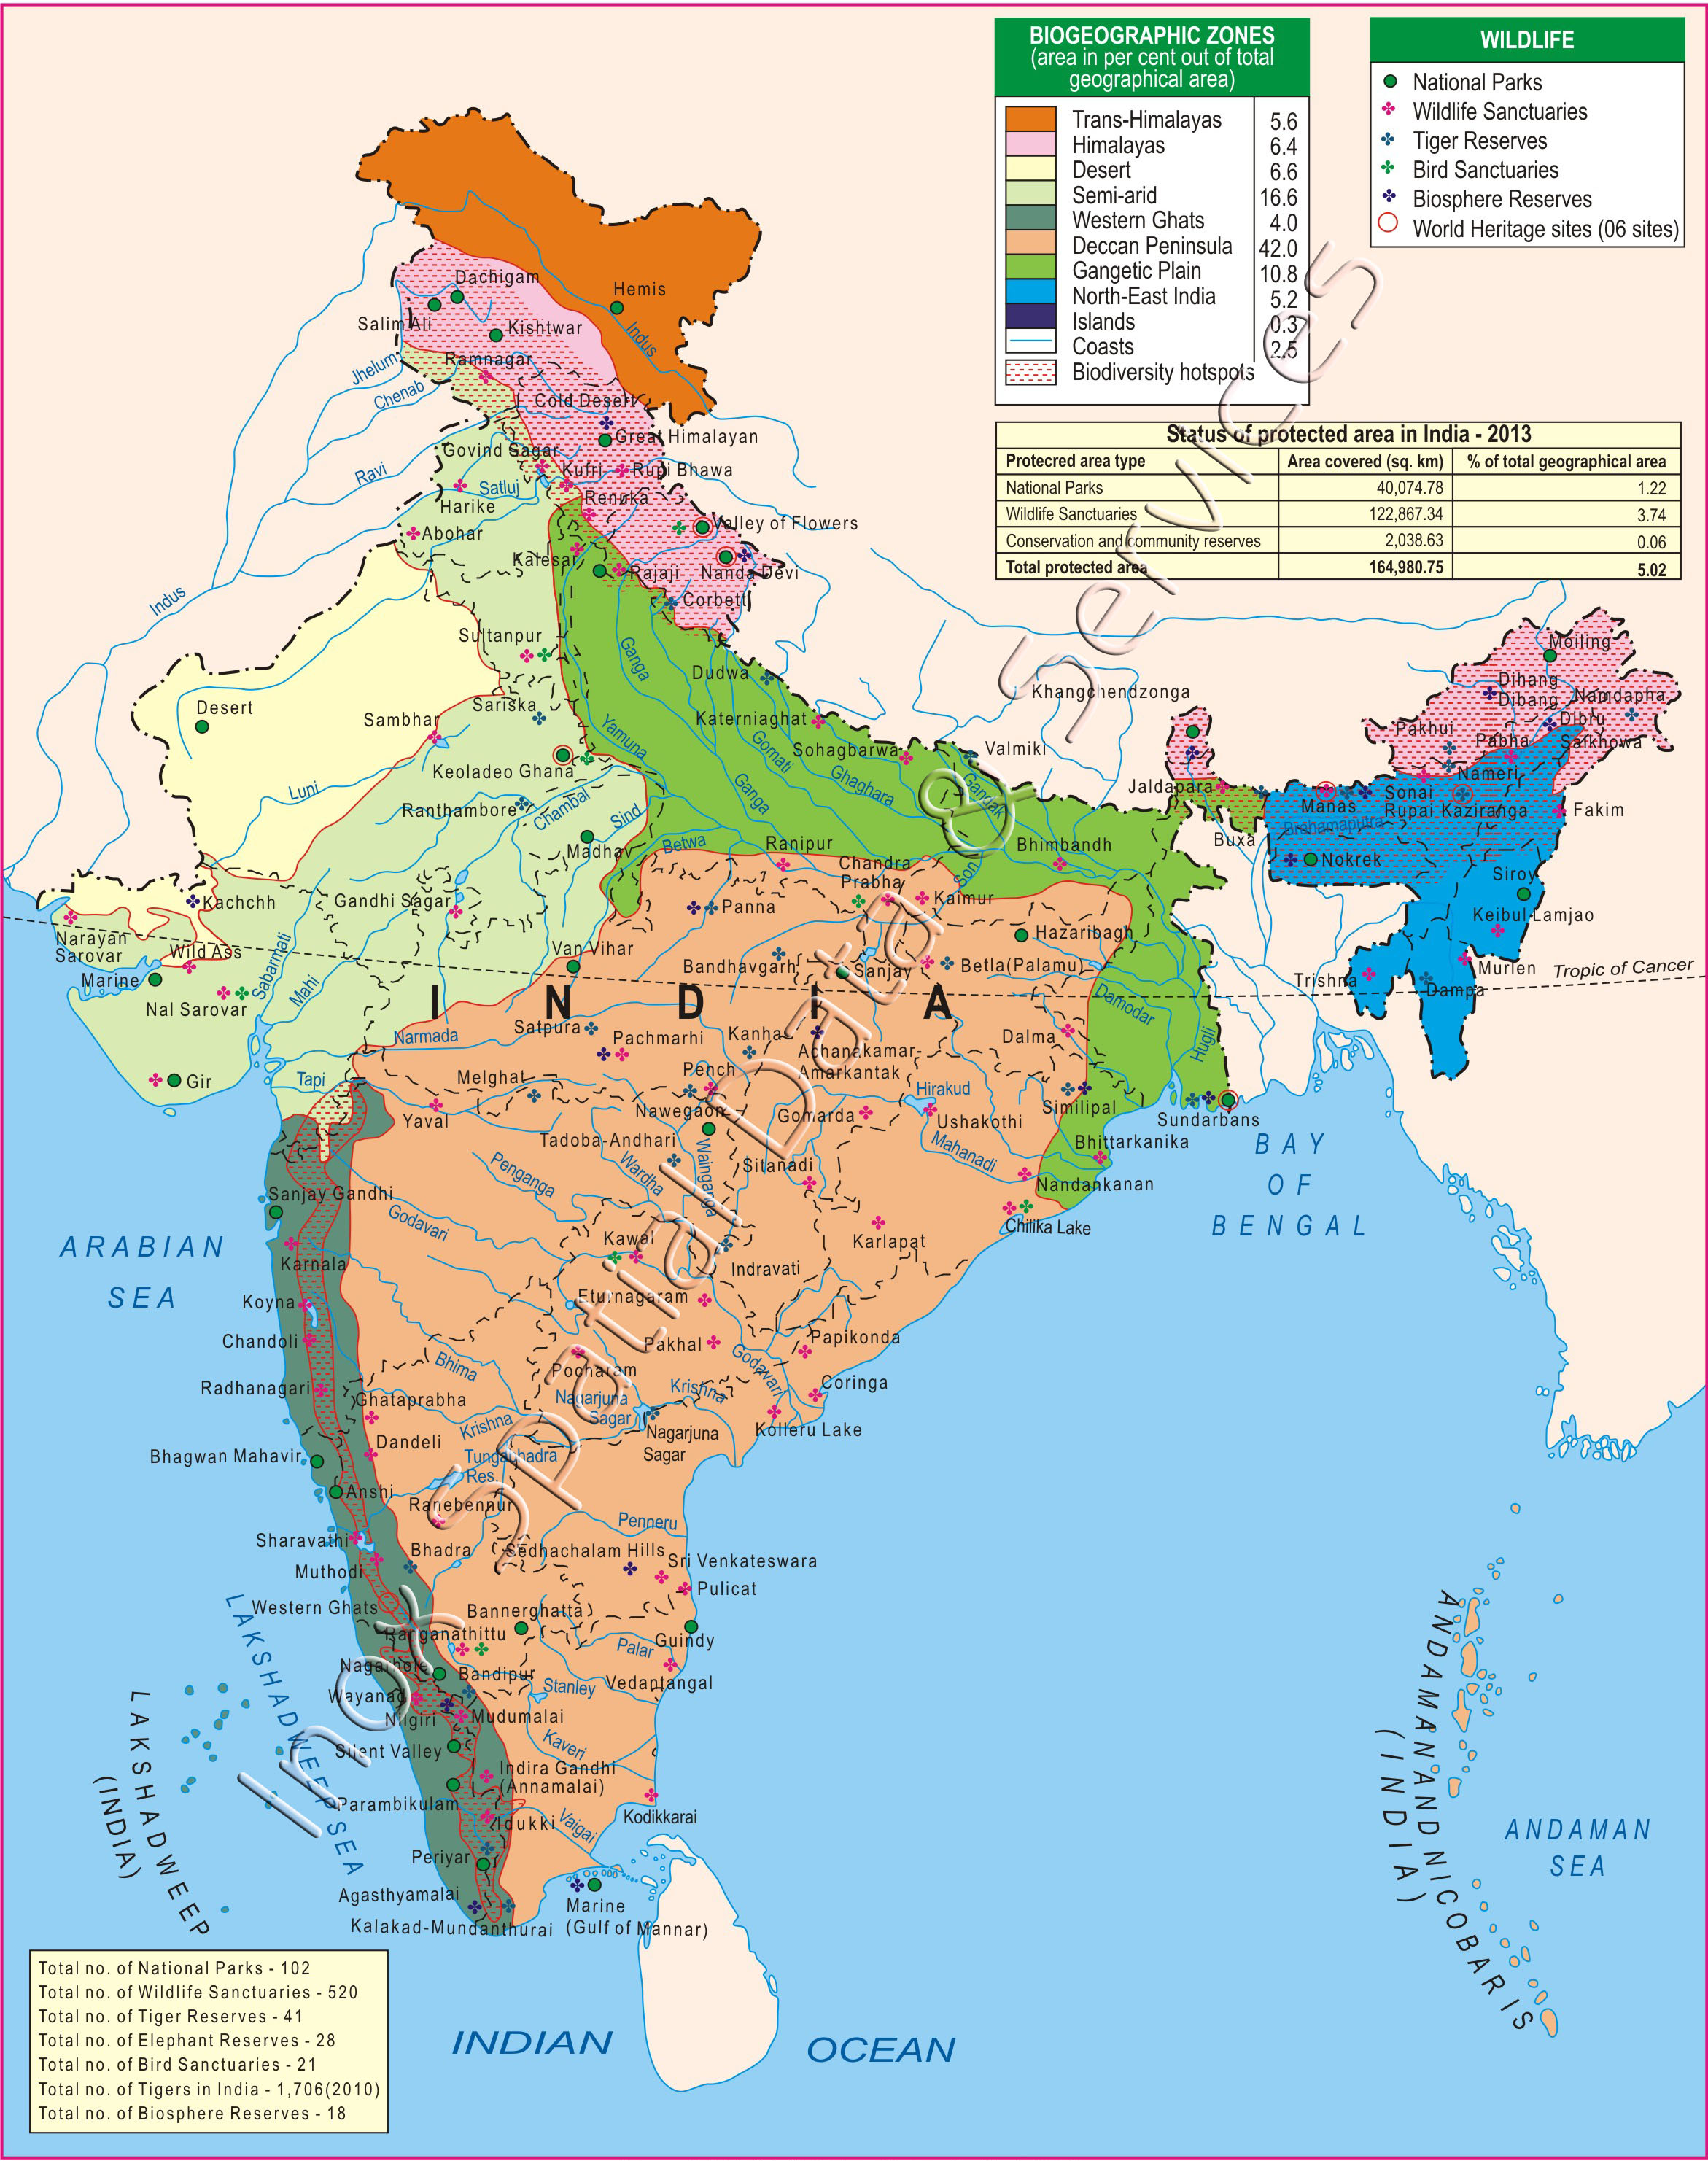 agriculture thematic map of india Inox Spatial Data Services Cartography Map agriculture thematic map of india